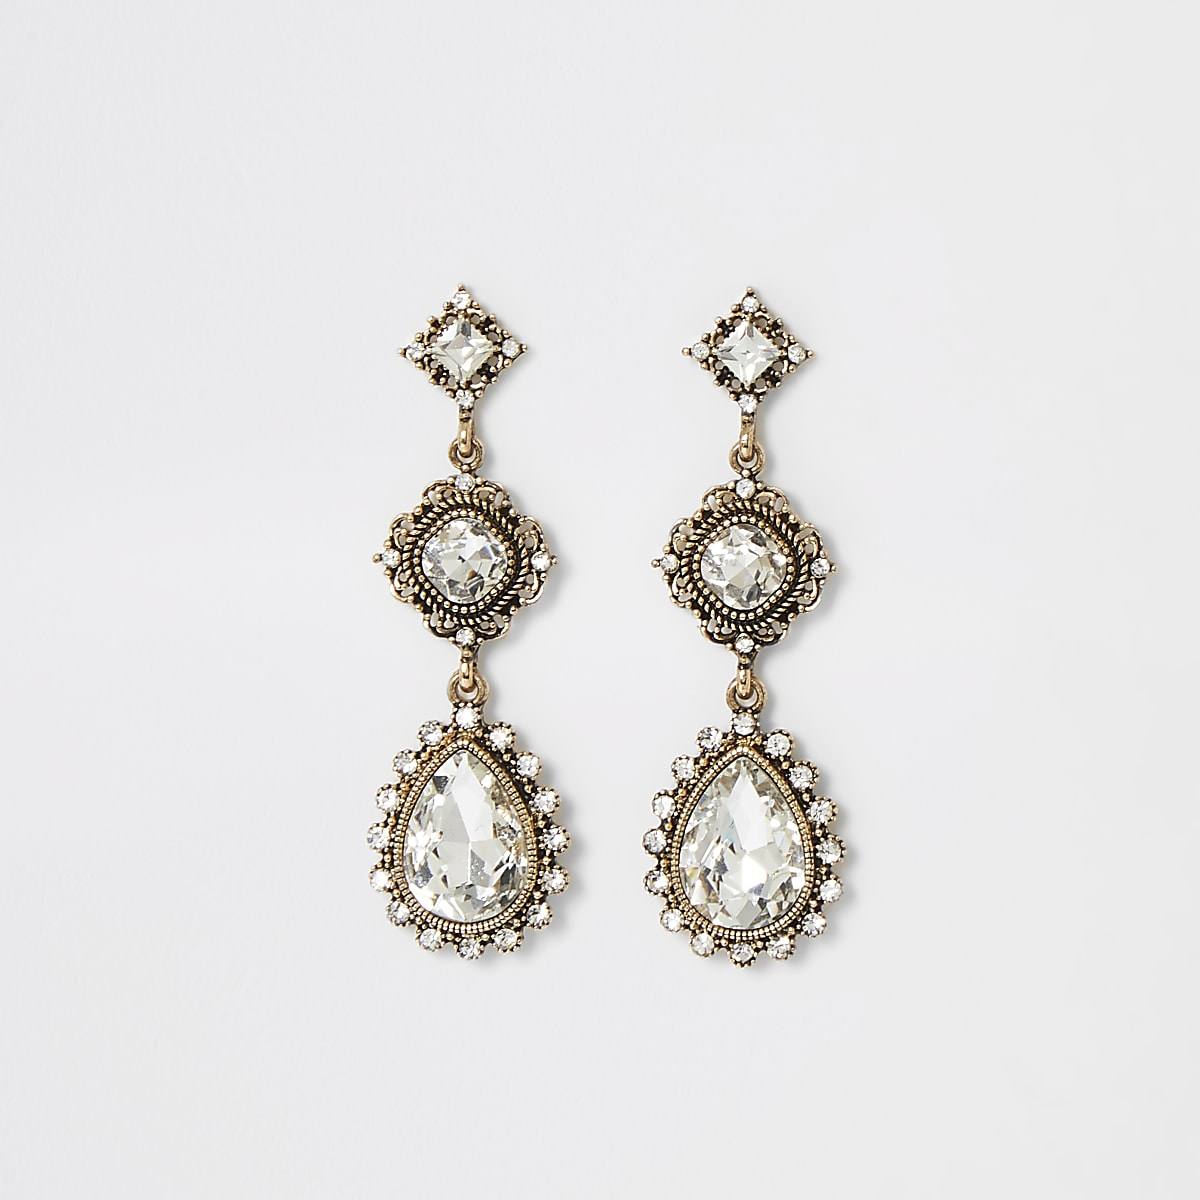 Gold color jewell drop vintage earrings